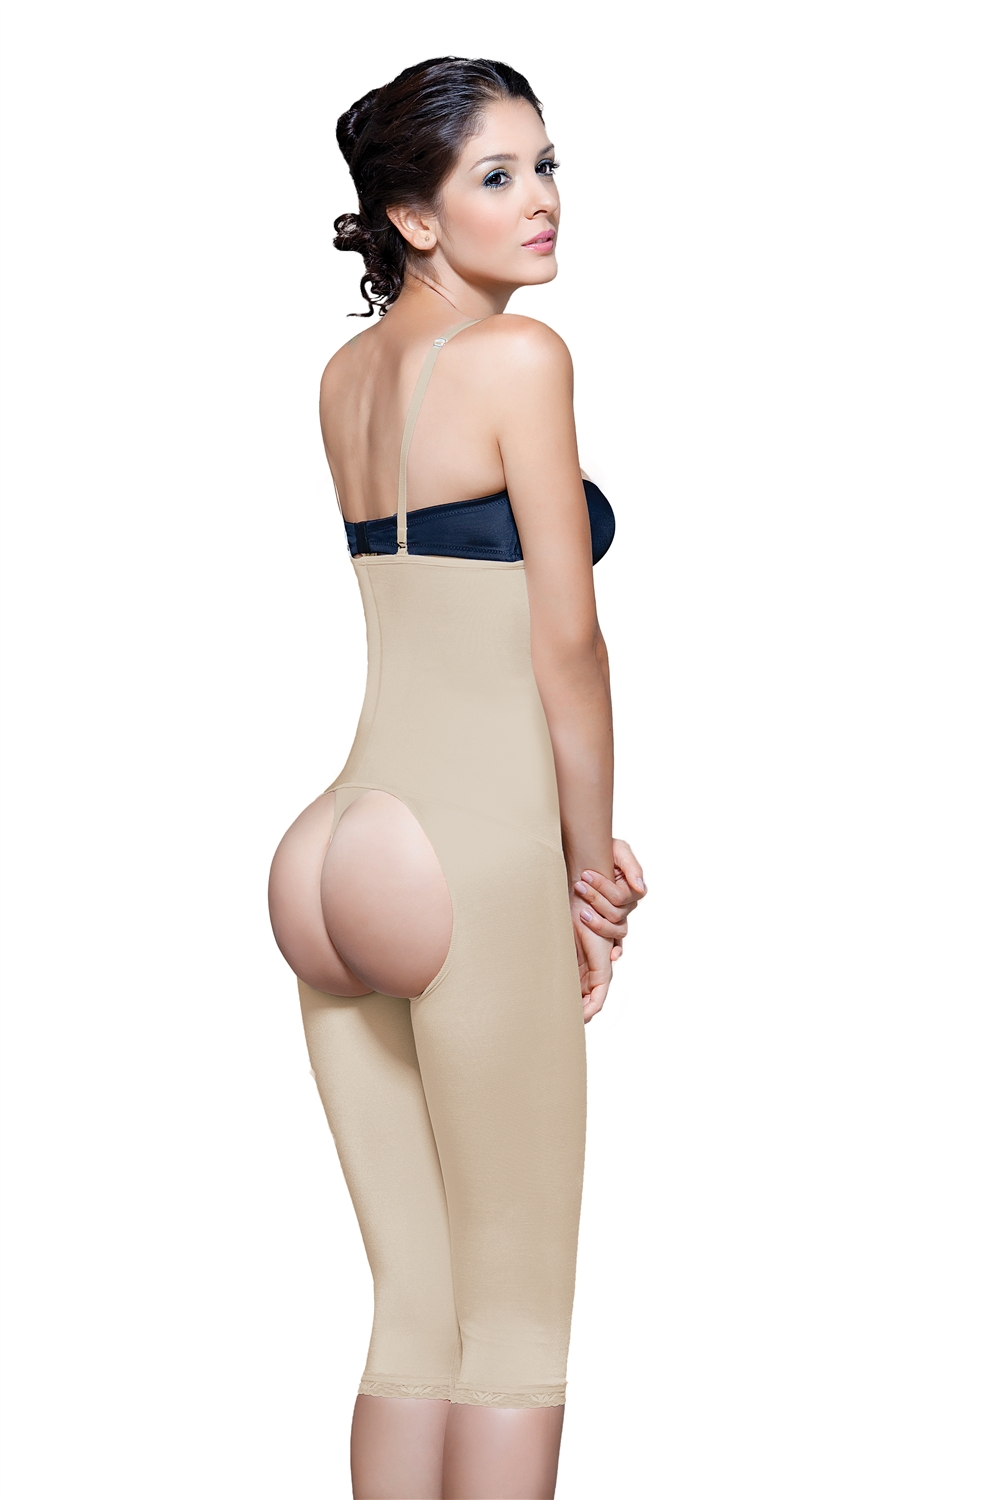 3b8f8ad2f Strapless Full Body w  Buttock Enhancer · Larger Photo ...